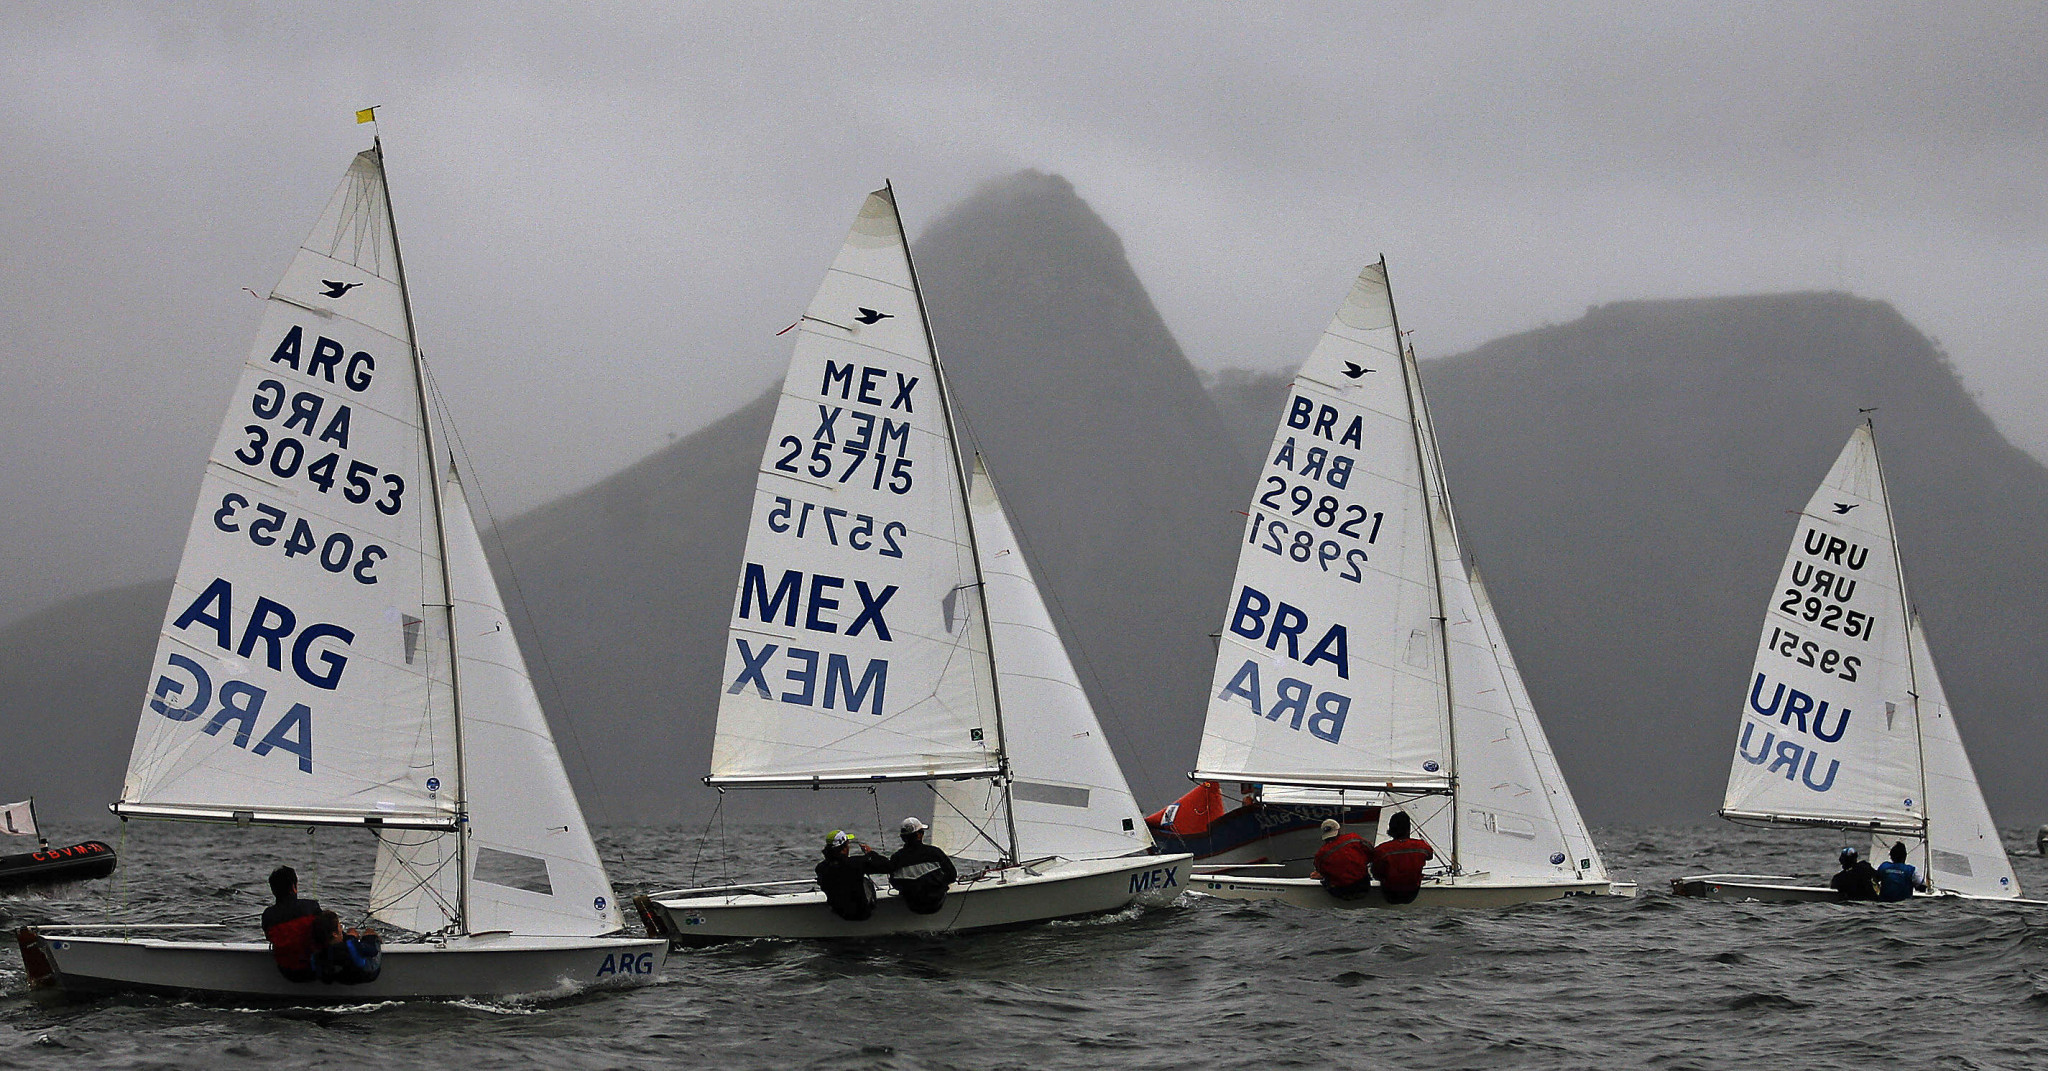 An extra sailing event has been added to the Santiago 2023 programme ©Getty Images